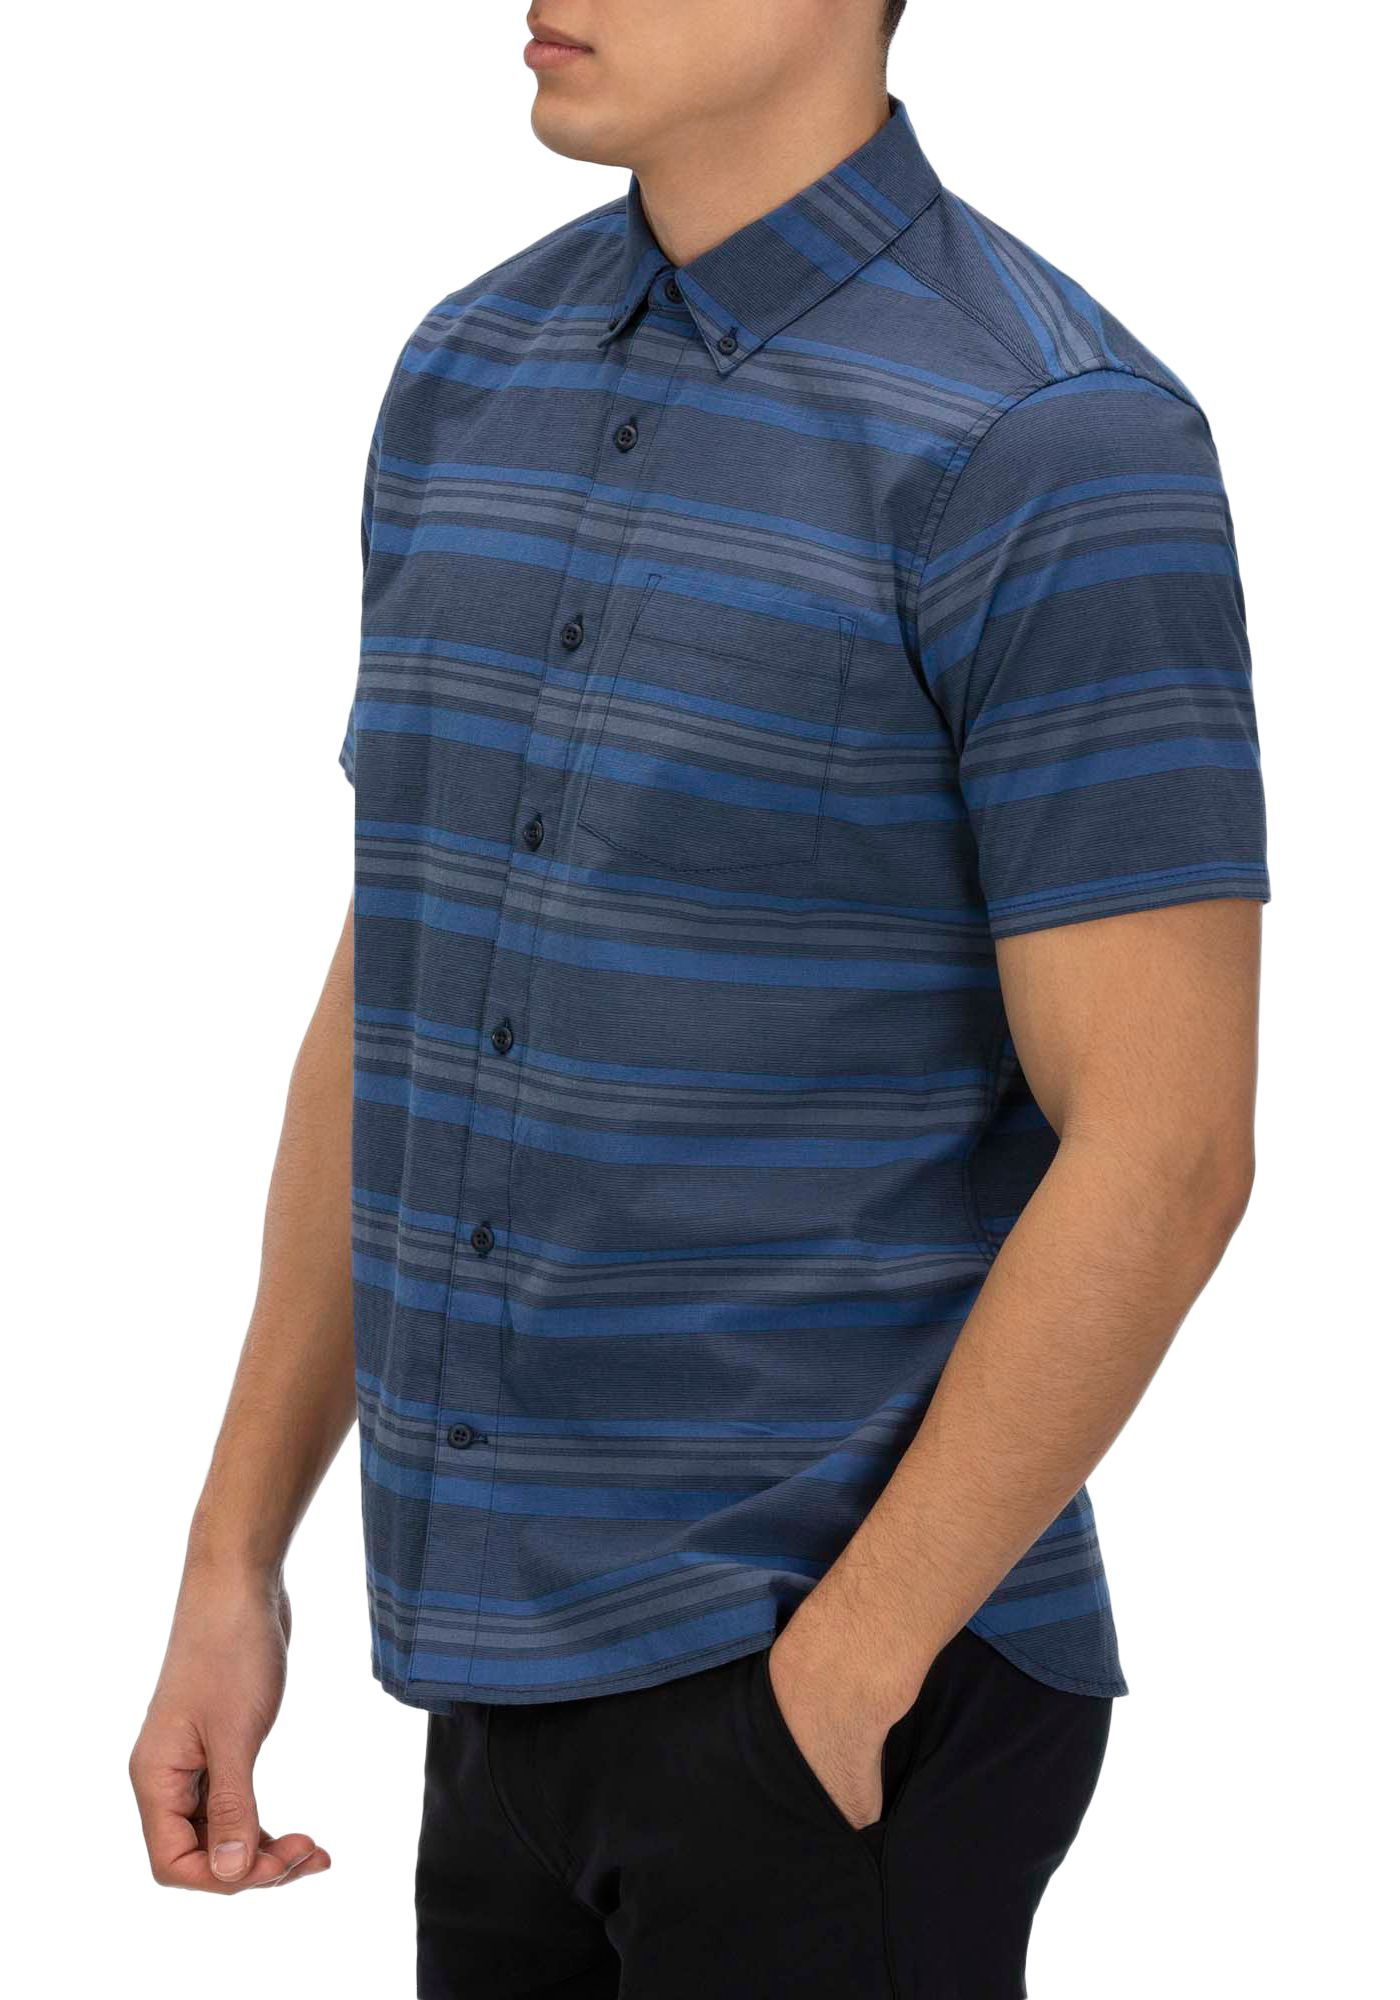 Hurley Men's Outlaw Stretch Short Sleeve Button Down Shirt